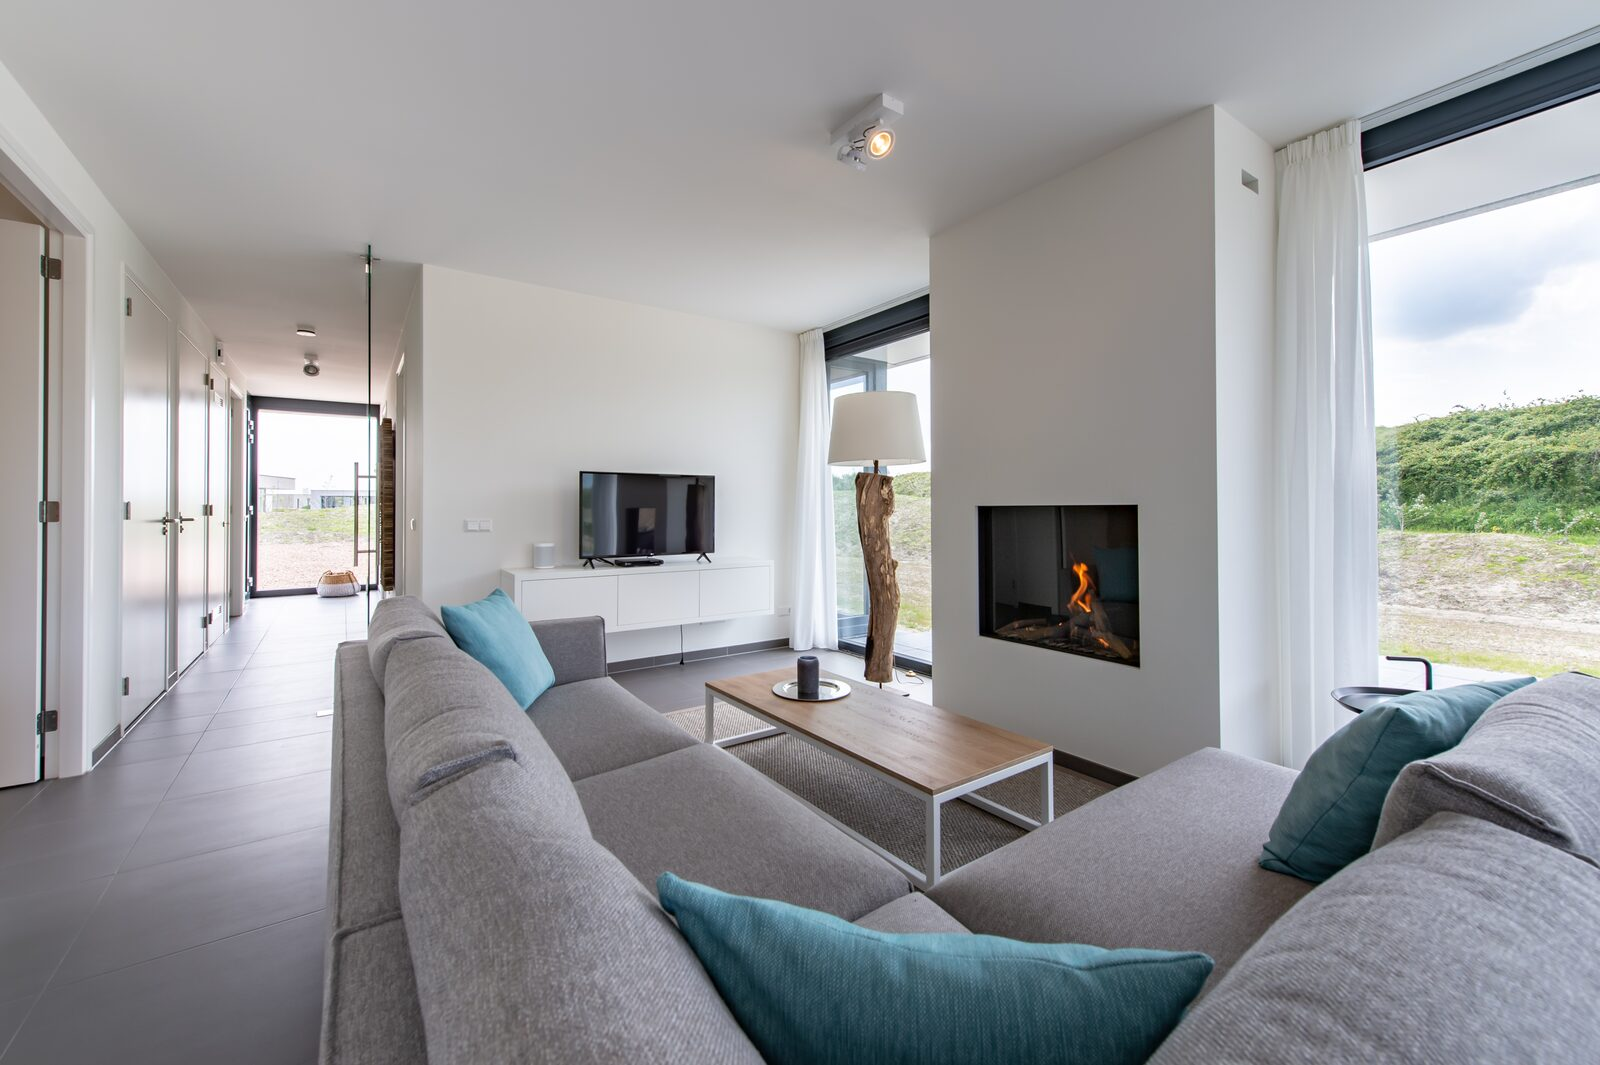 Luxurious holiday home zeeland 8 persons